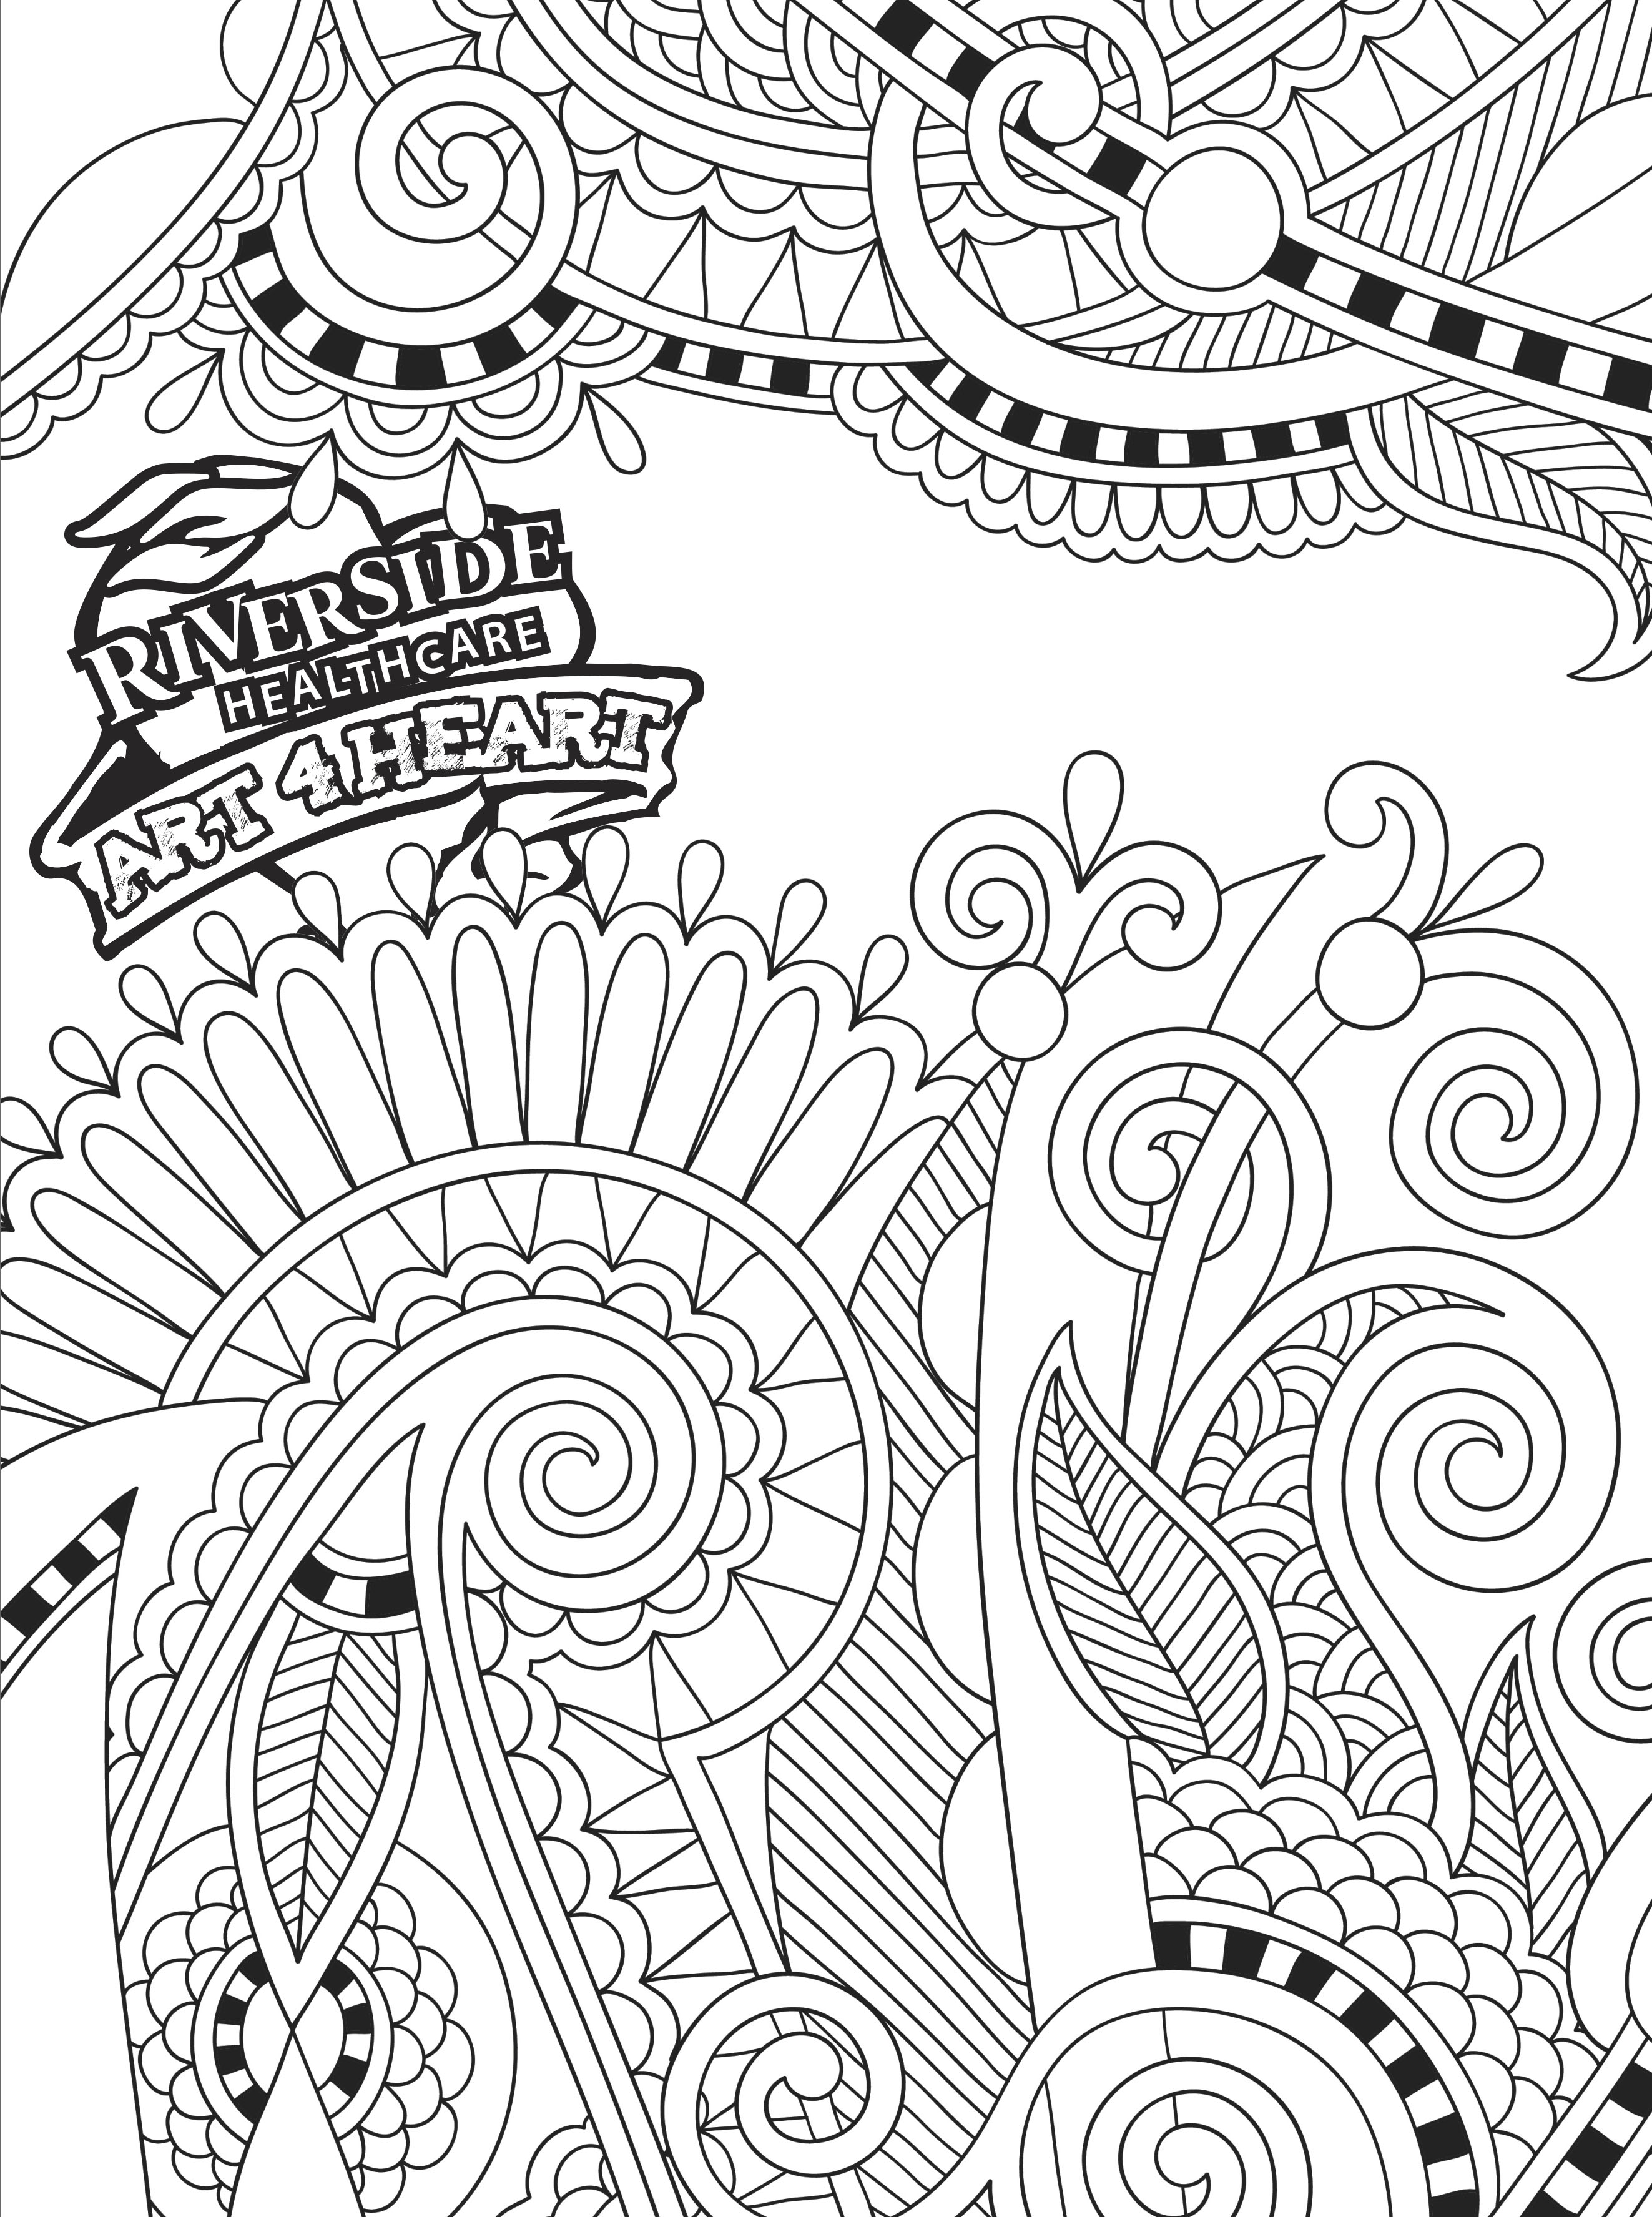 Printable Coloring Pages – HealthCurrents   coloring pages for adults cool